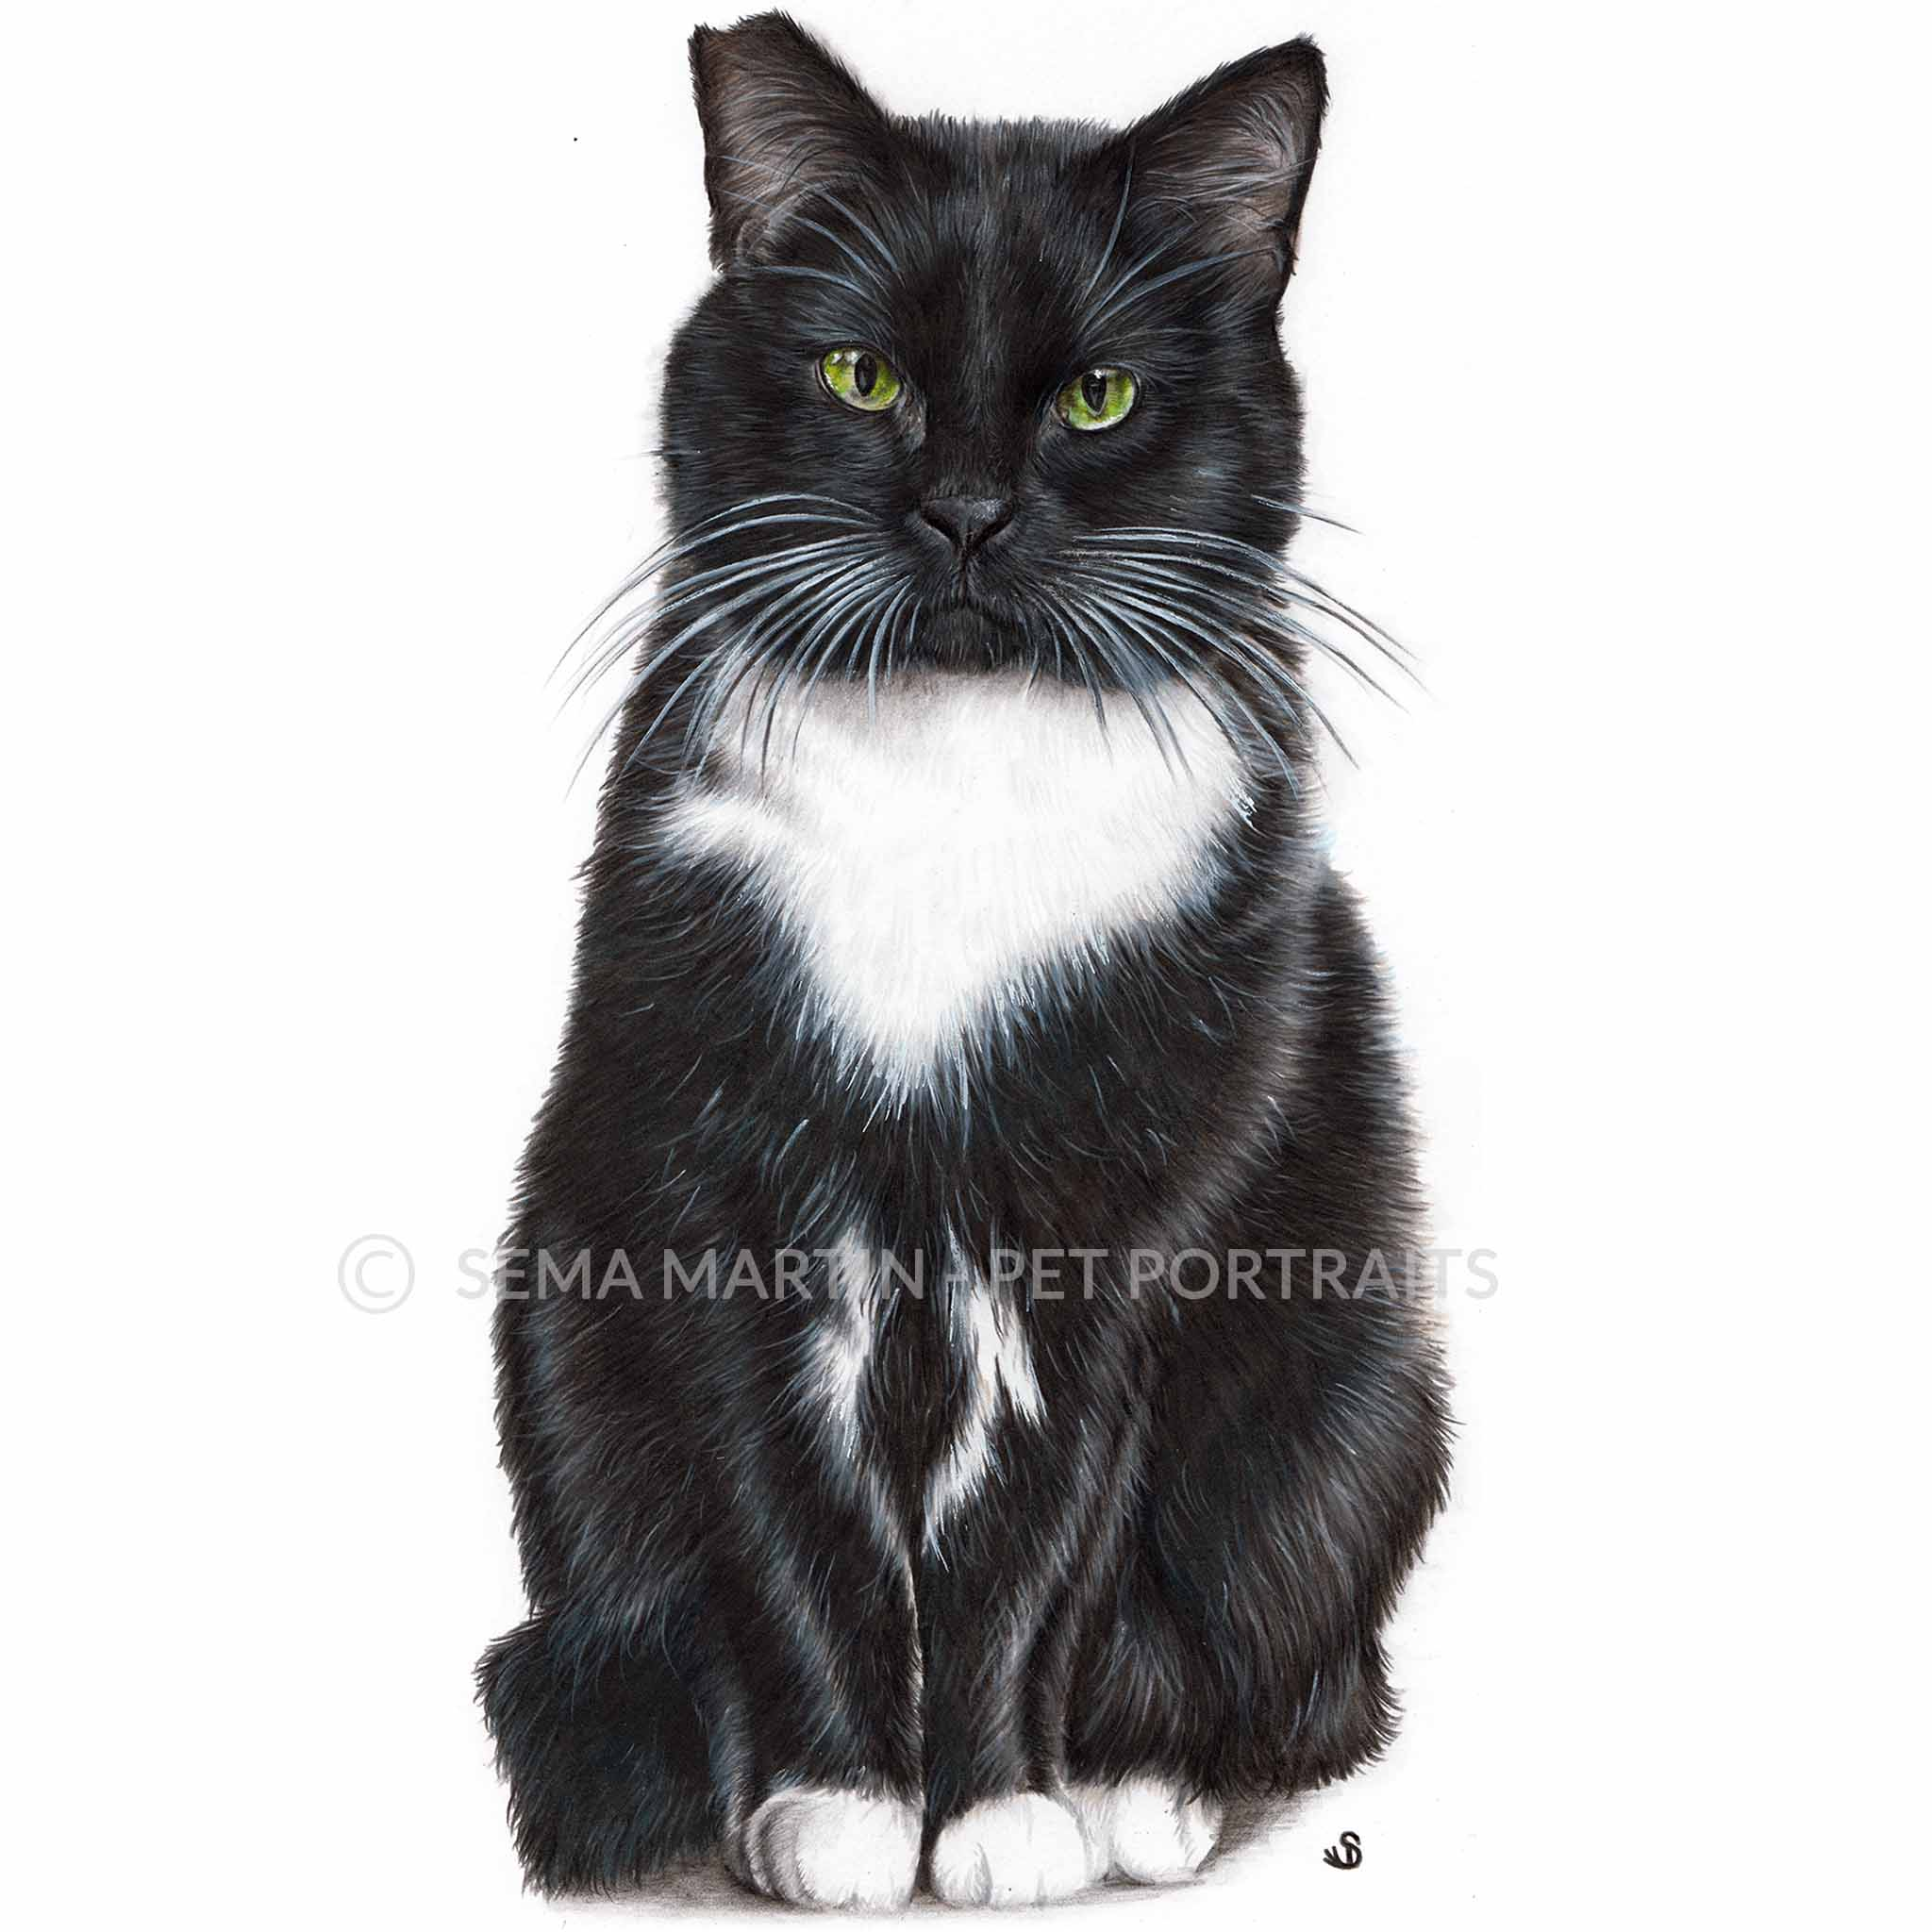 Copy of 'Poppy' - UK, 8.3 x 11.7 inches, 2018, Colour Pencil Tuxedo Cat Portrait by Sema Martin